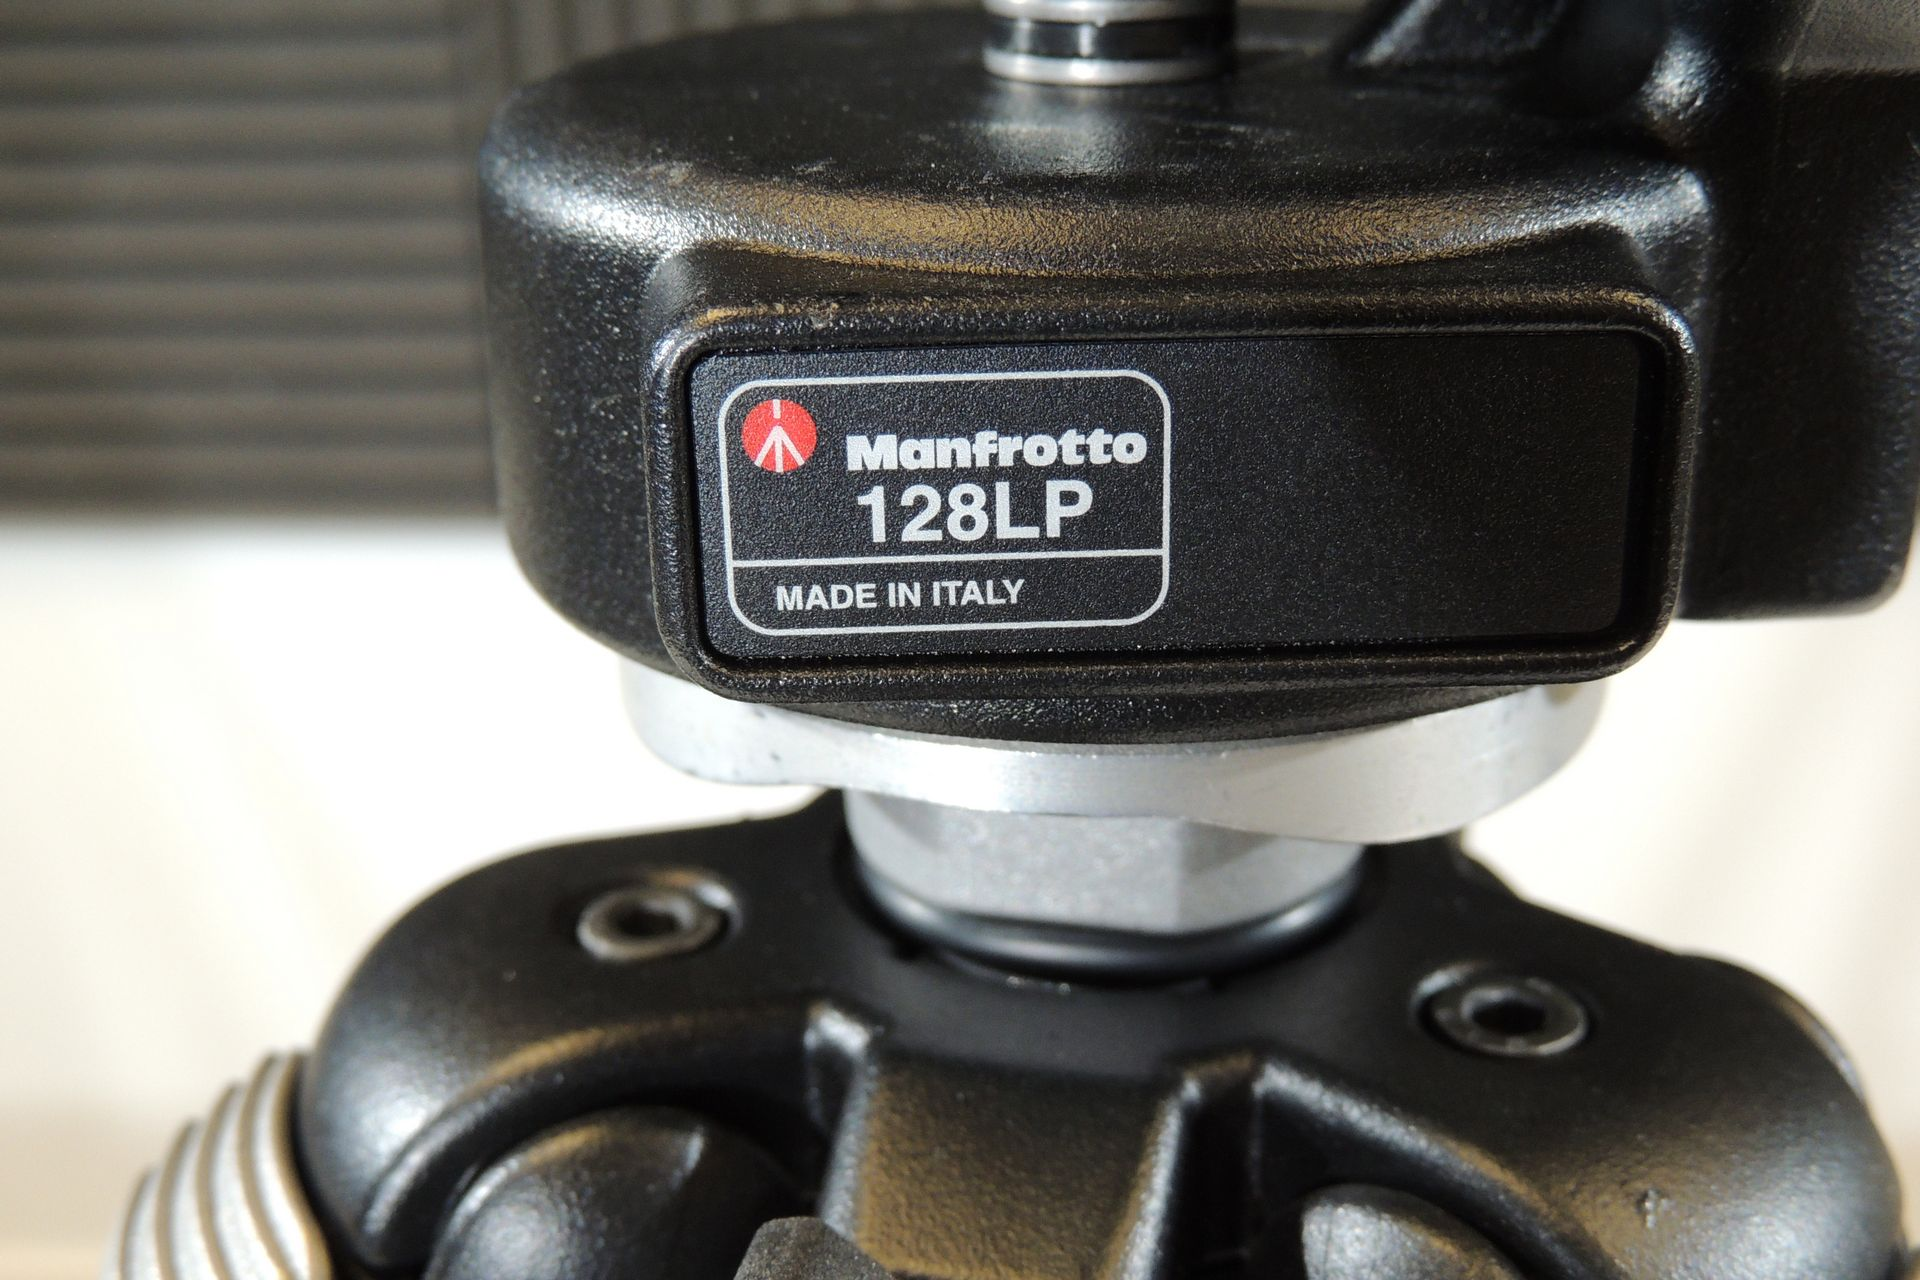 Manfrotto 290 3001N tripod and LP128 head for sale at Plasma Music